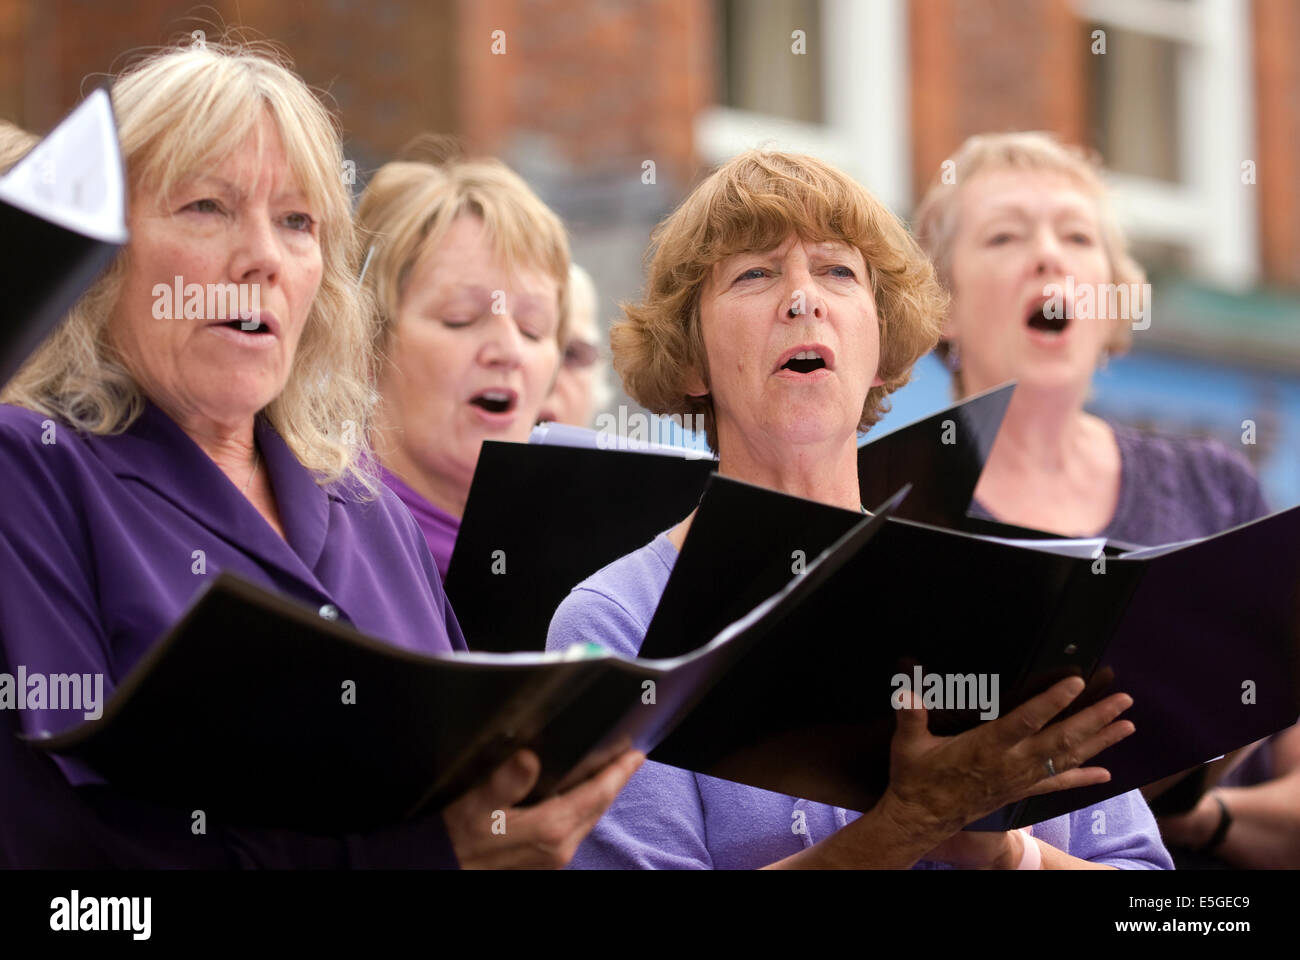 Local community choir group performing as part of the celebrations of the centenary of the World War One conflict, - Stock Image